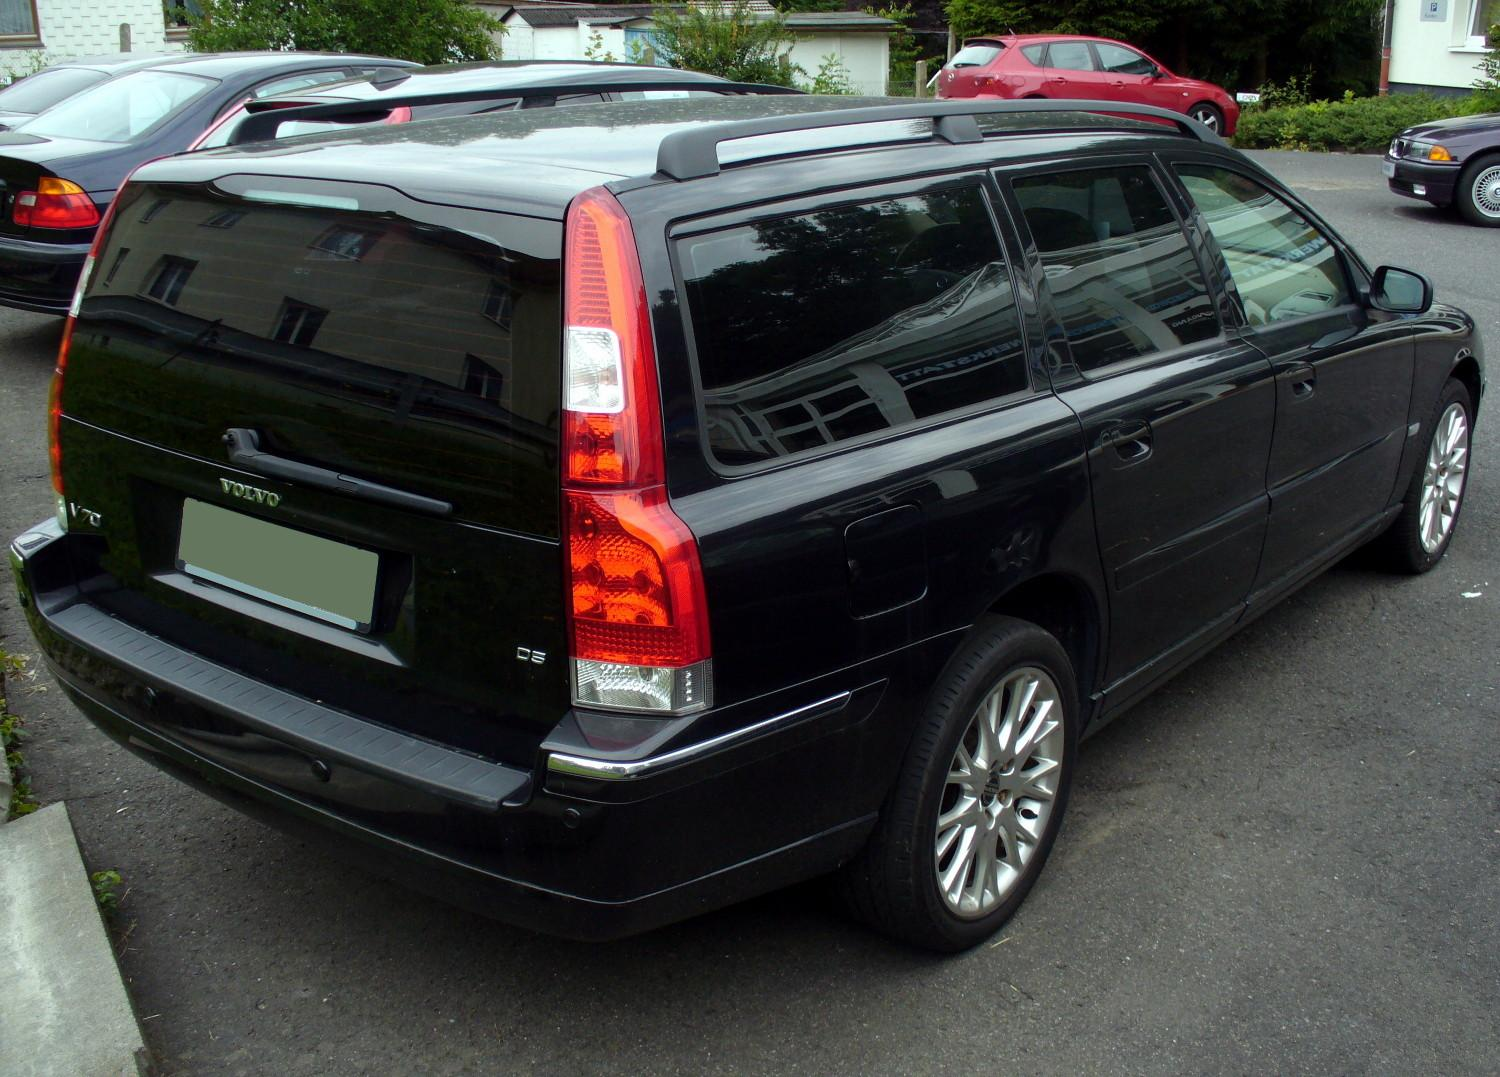 file volvo v70 d5 summum facelift heck jpg wikimedia commons. Black Bedroom Furniture Sets. Home Design Ideas